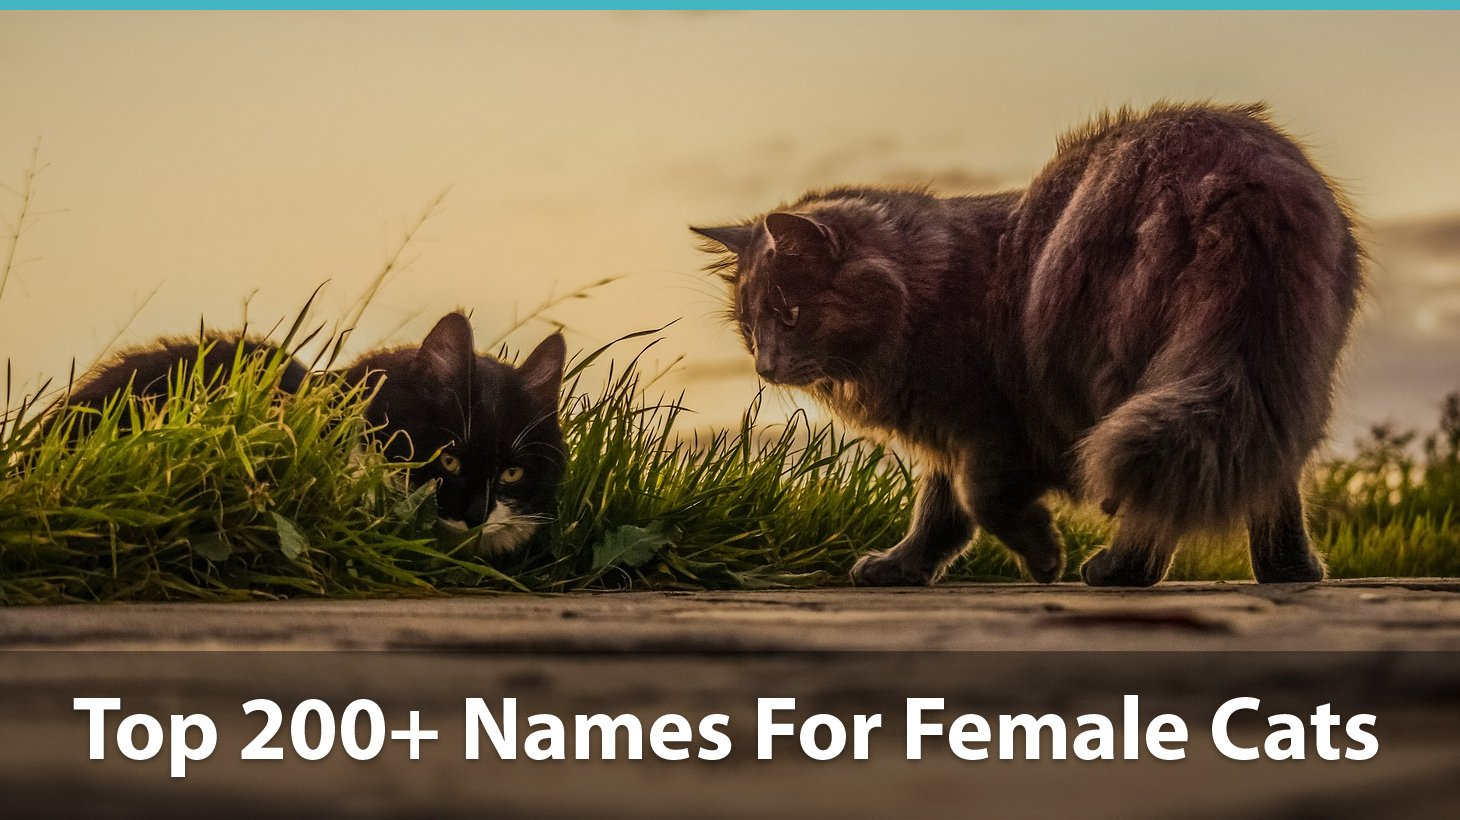 Top 200+ Names For Girl Cats (Cute, Funny, Unique, \u0026 Pun Names!)